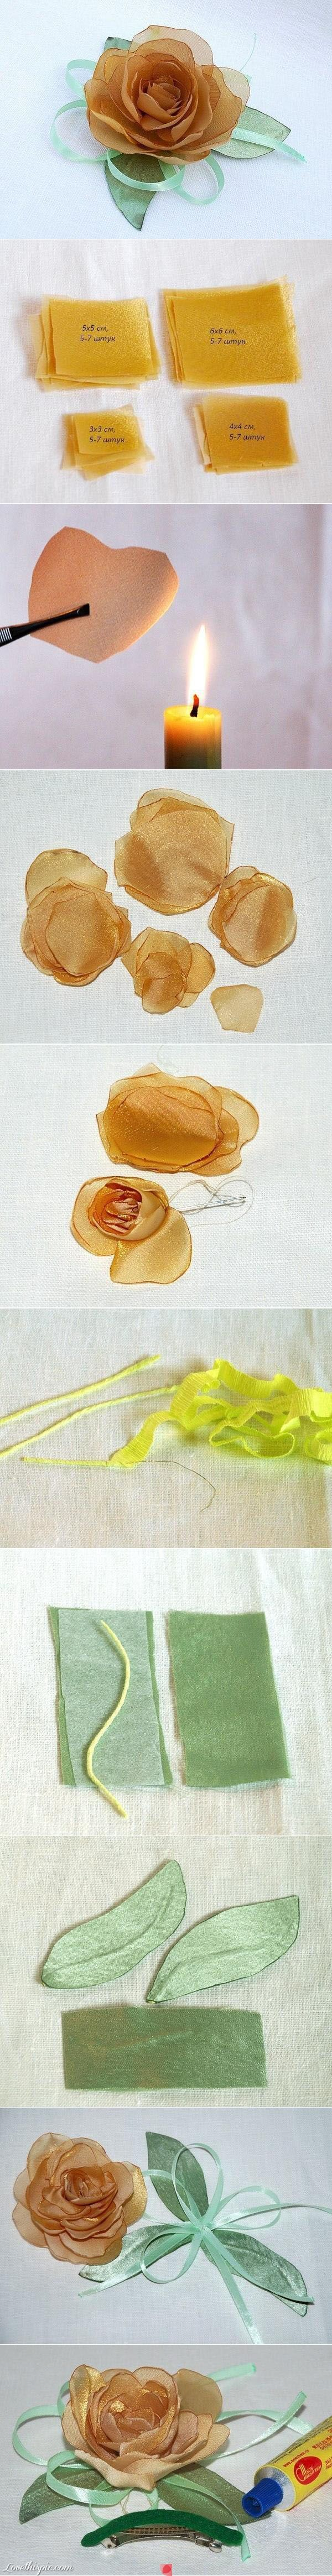 DIY Hair Flower Bow diy crafts home made easy  http://www.lovethispic.com/image/31416/diy-hair-flower-bow  If it is as easy as it is reported to be, what a find!